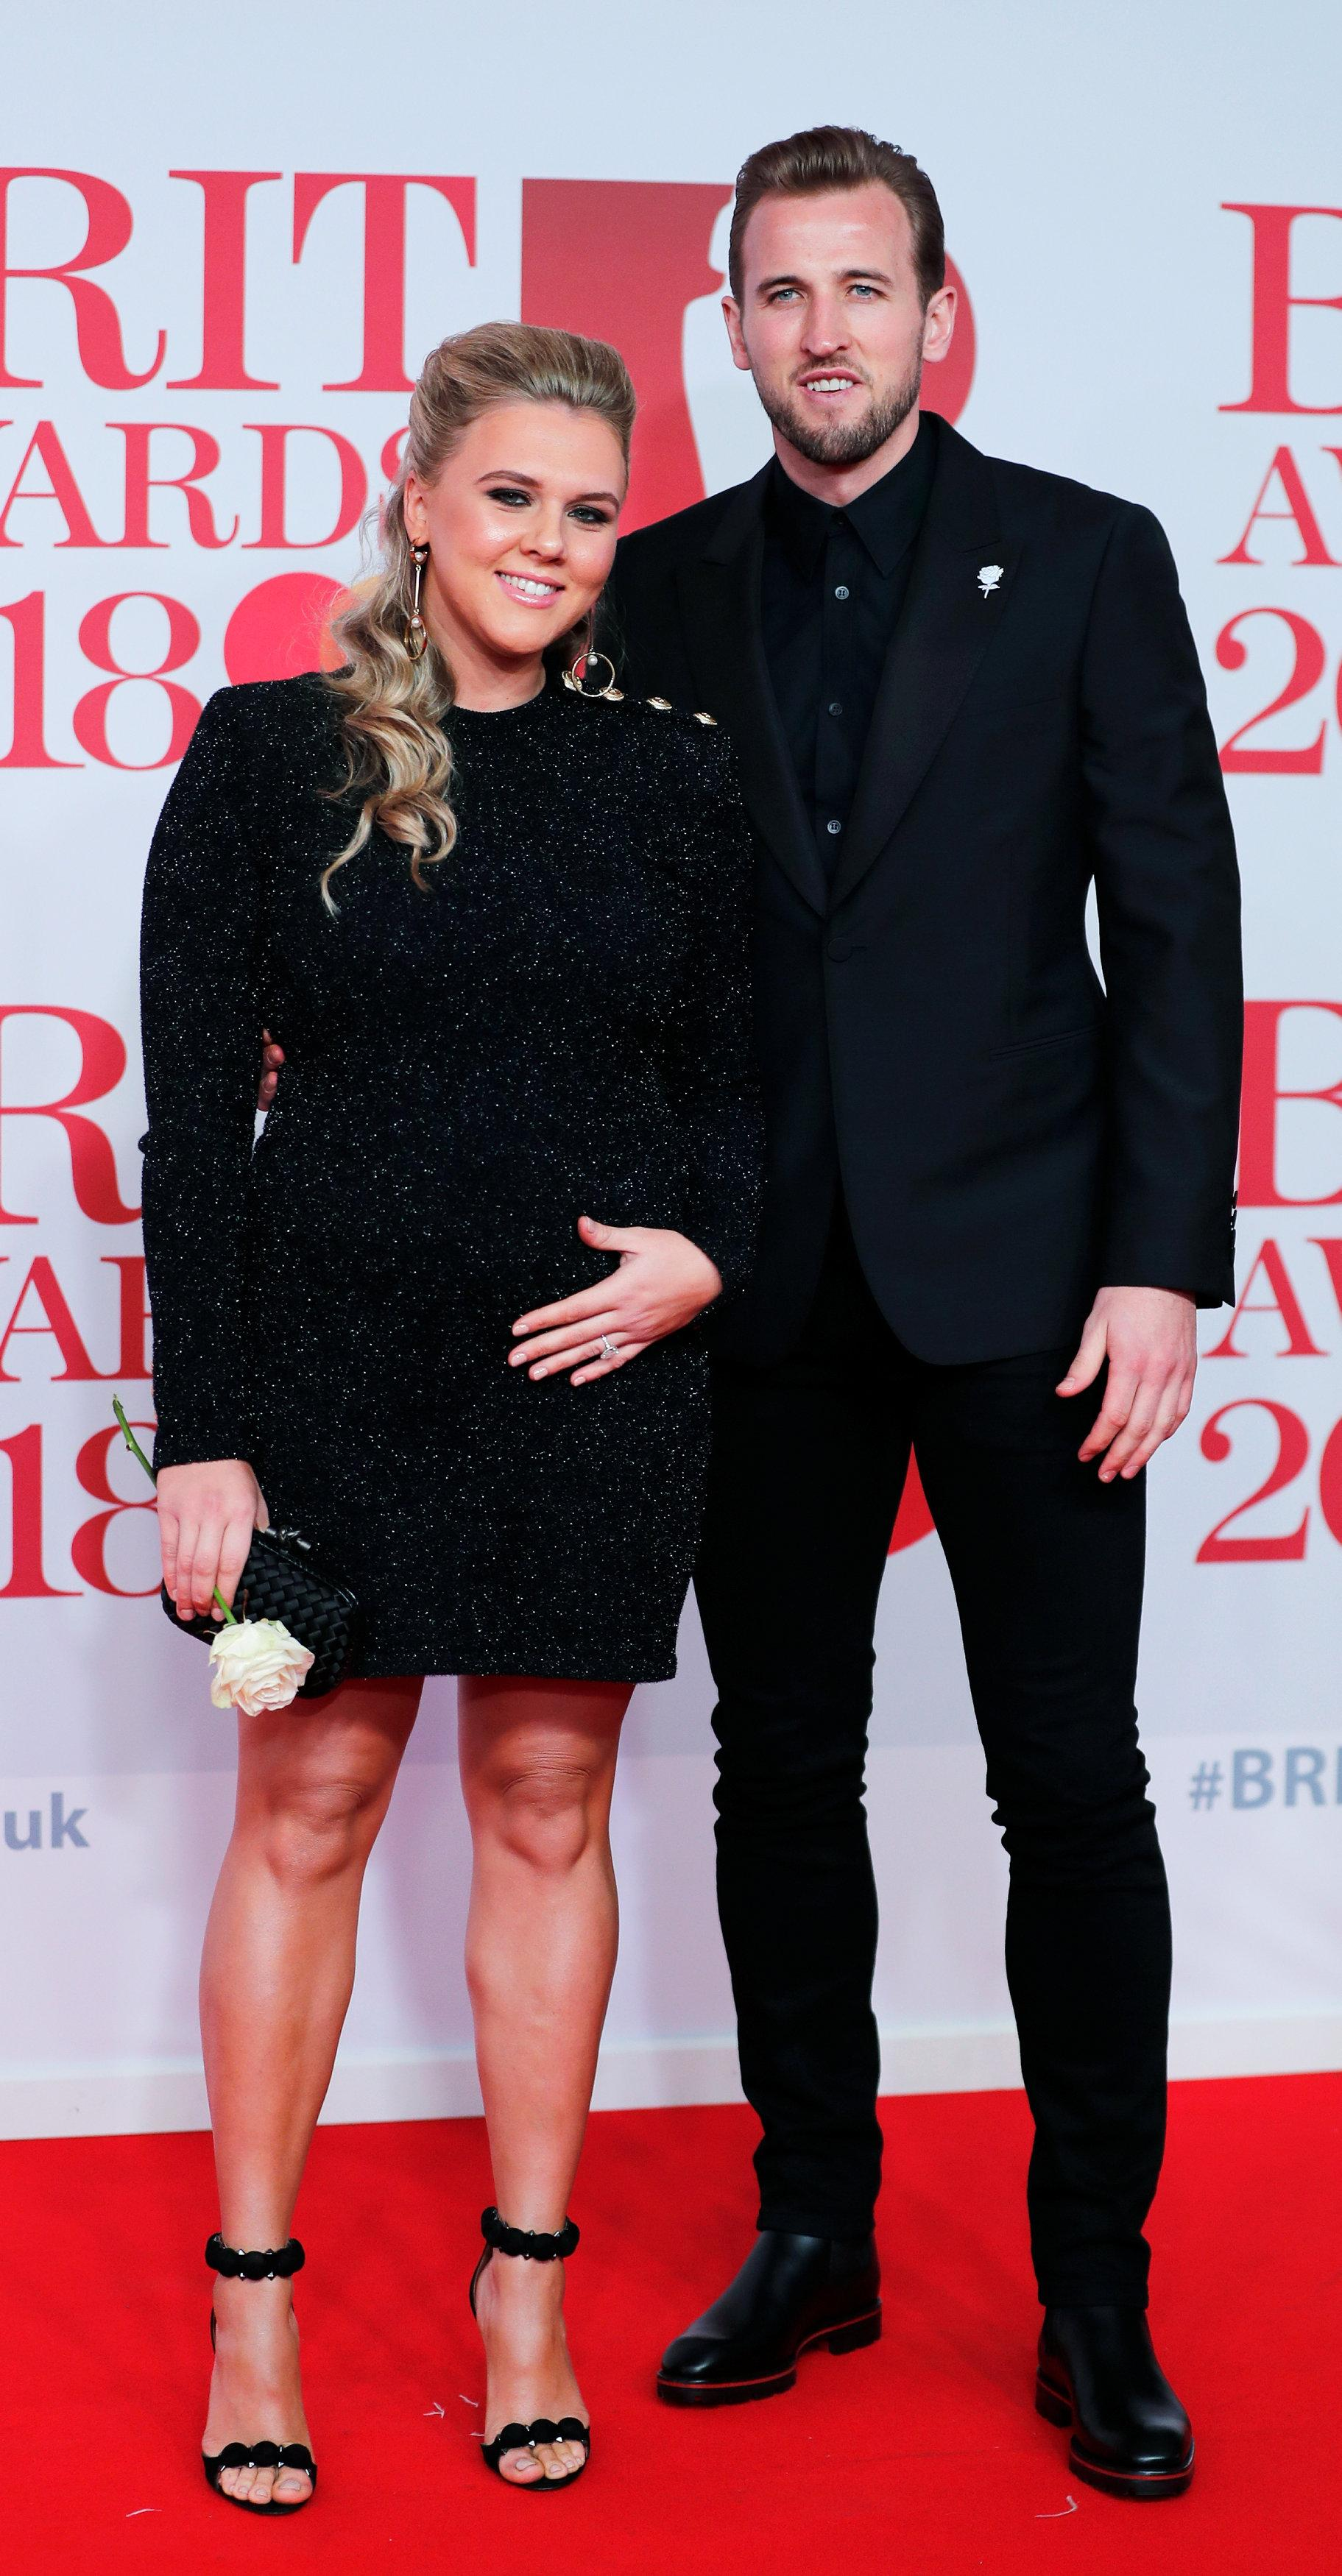 Harry Kane and partner Katie Goodland have gone from a family unit of three to one of four